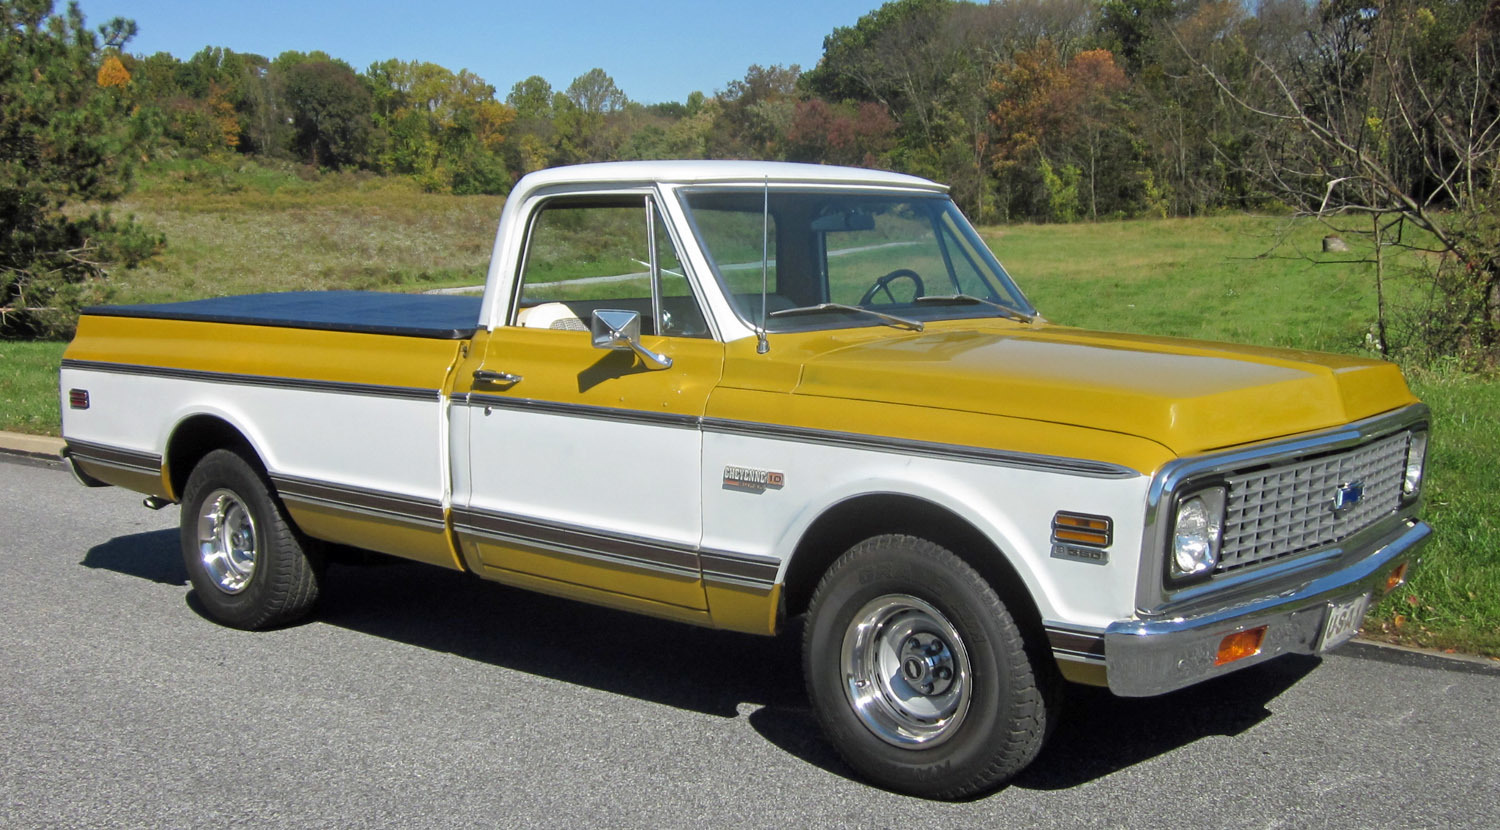 All Chevy c10 72 chevy : All Chevy » 1972 Chevrolet C10 - Old Chevy Photos Collection, All ...